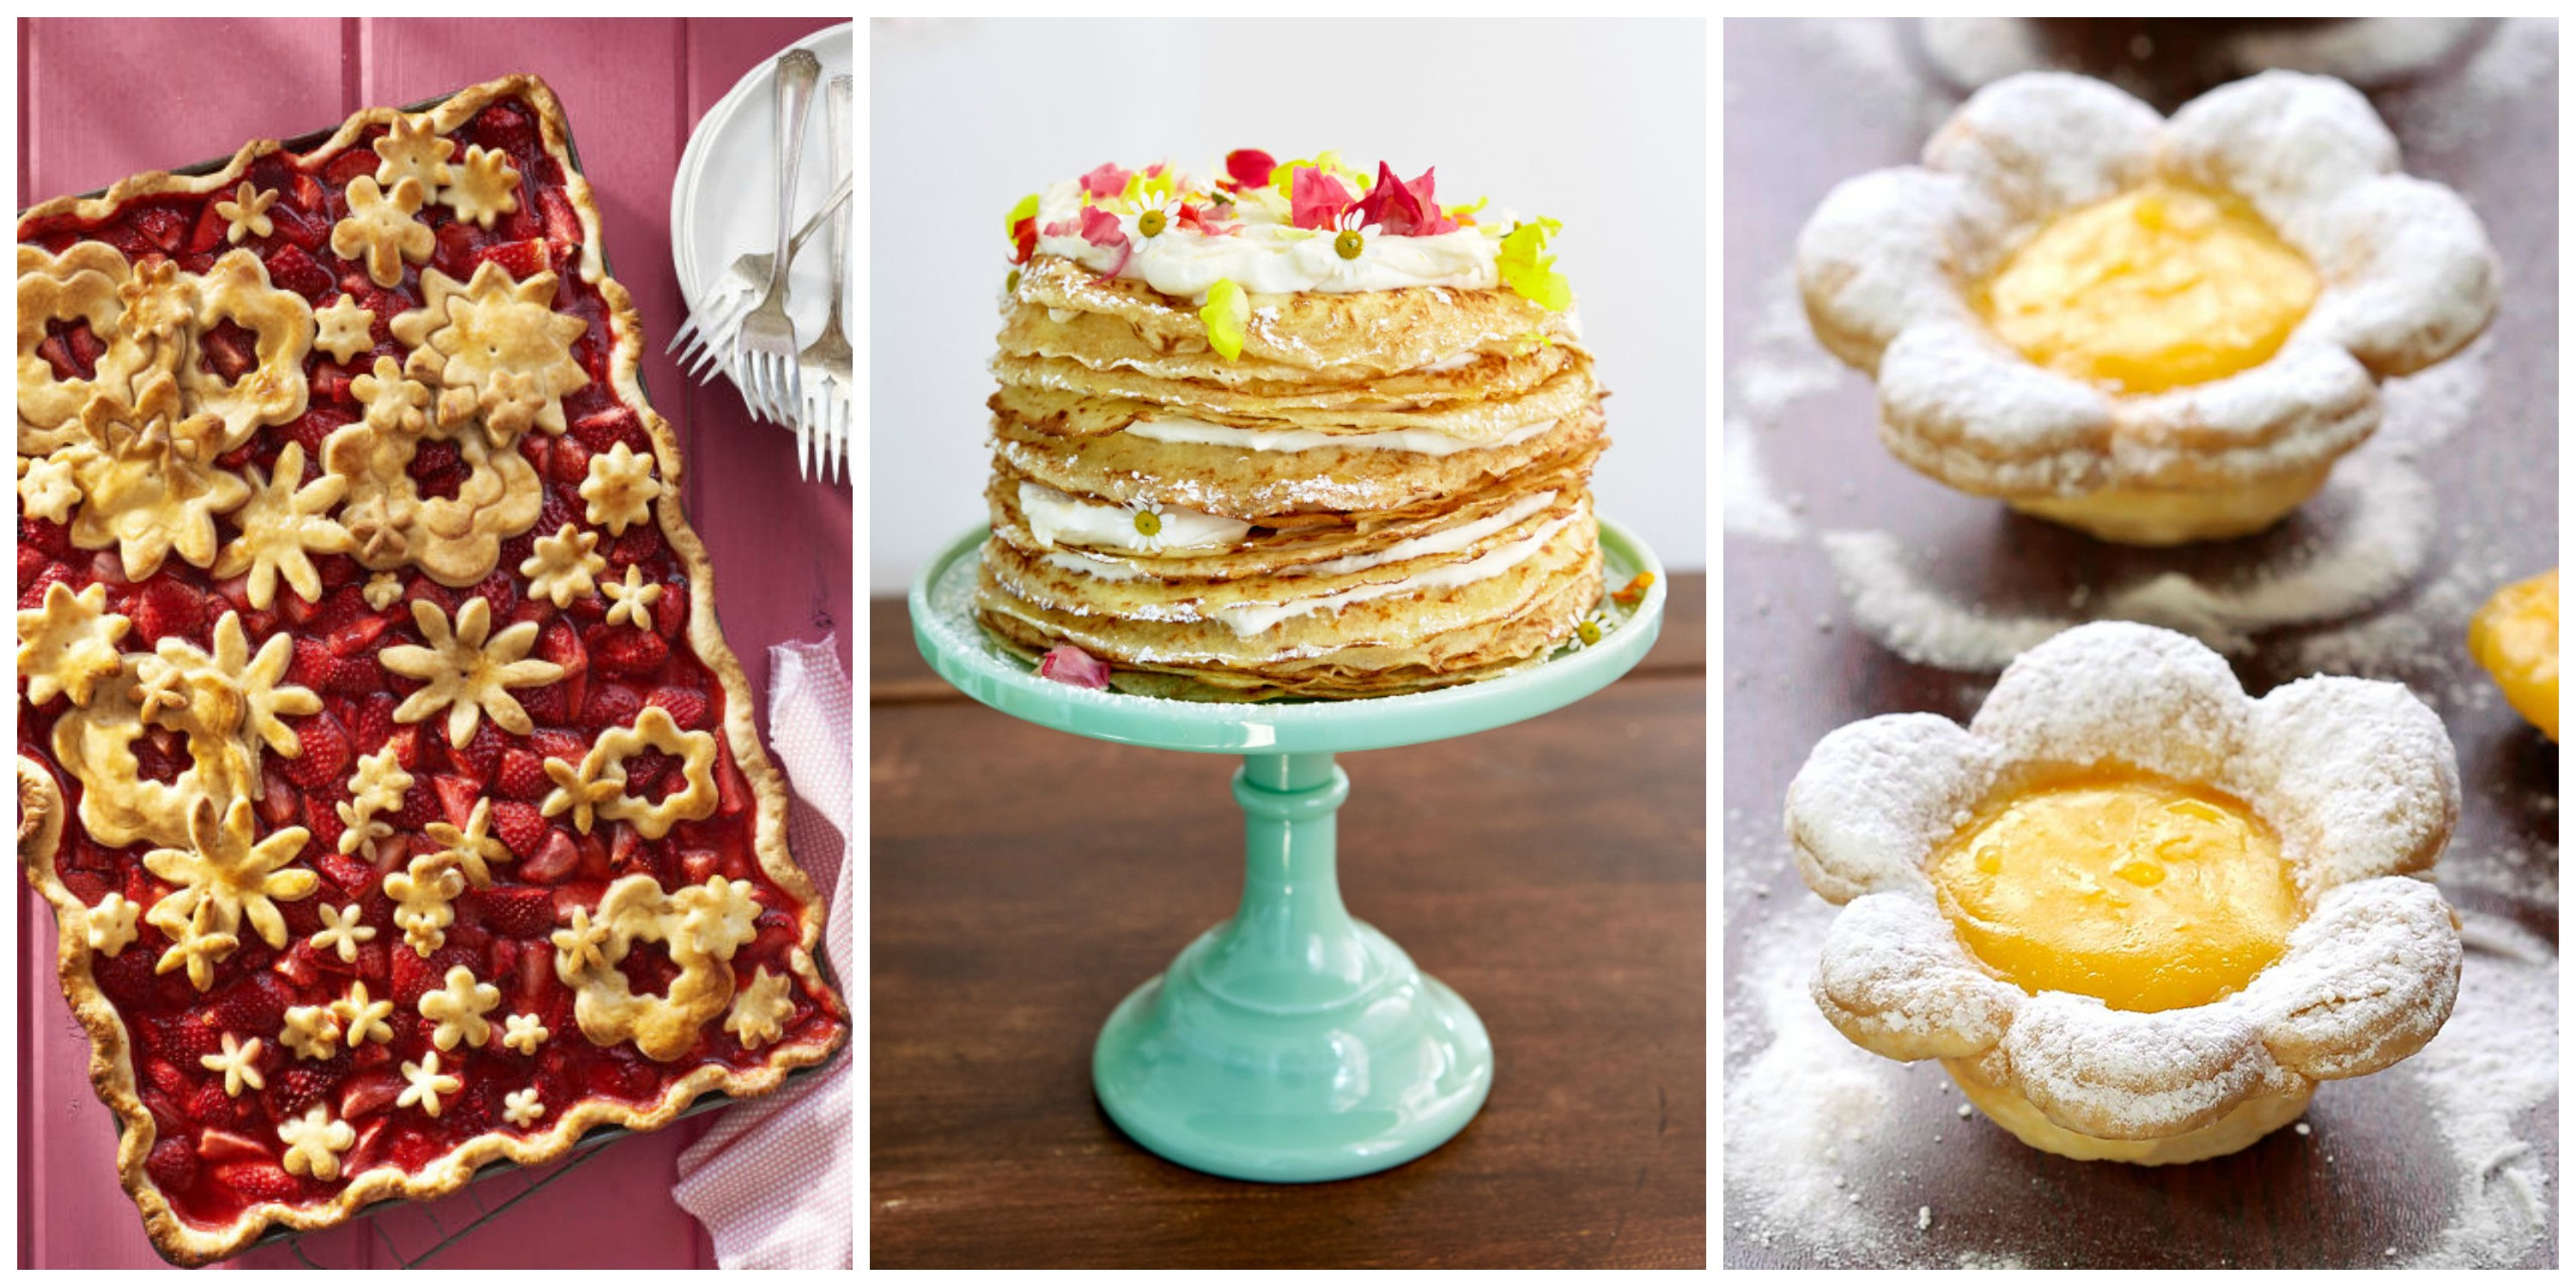 Desserts For Mother'S Day  20 Cute Mother s Day Dessert Recipes What to Make for